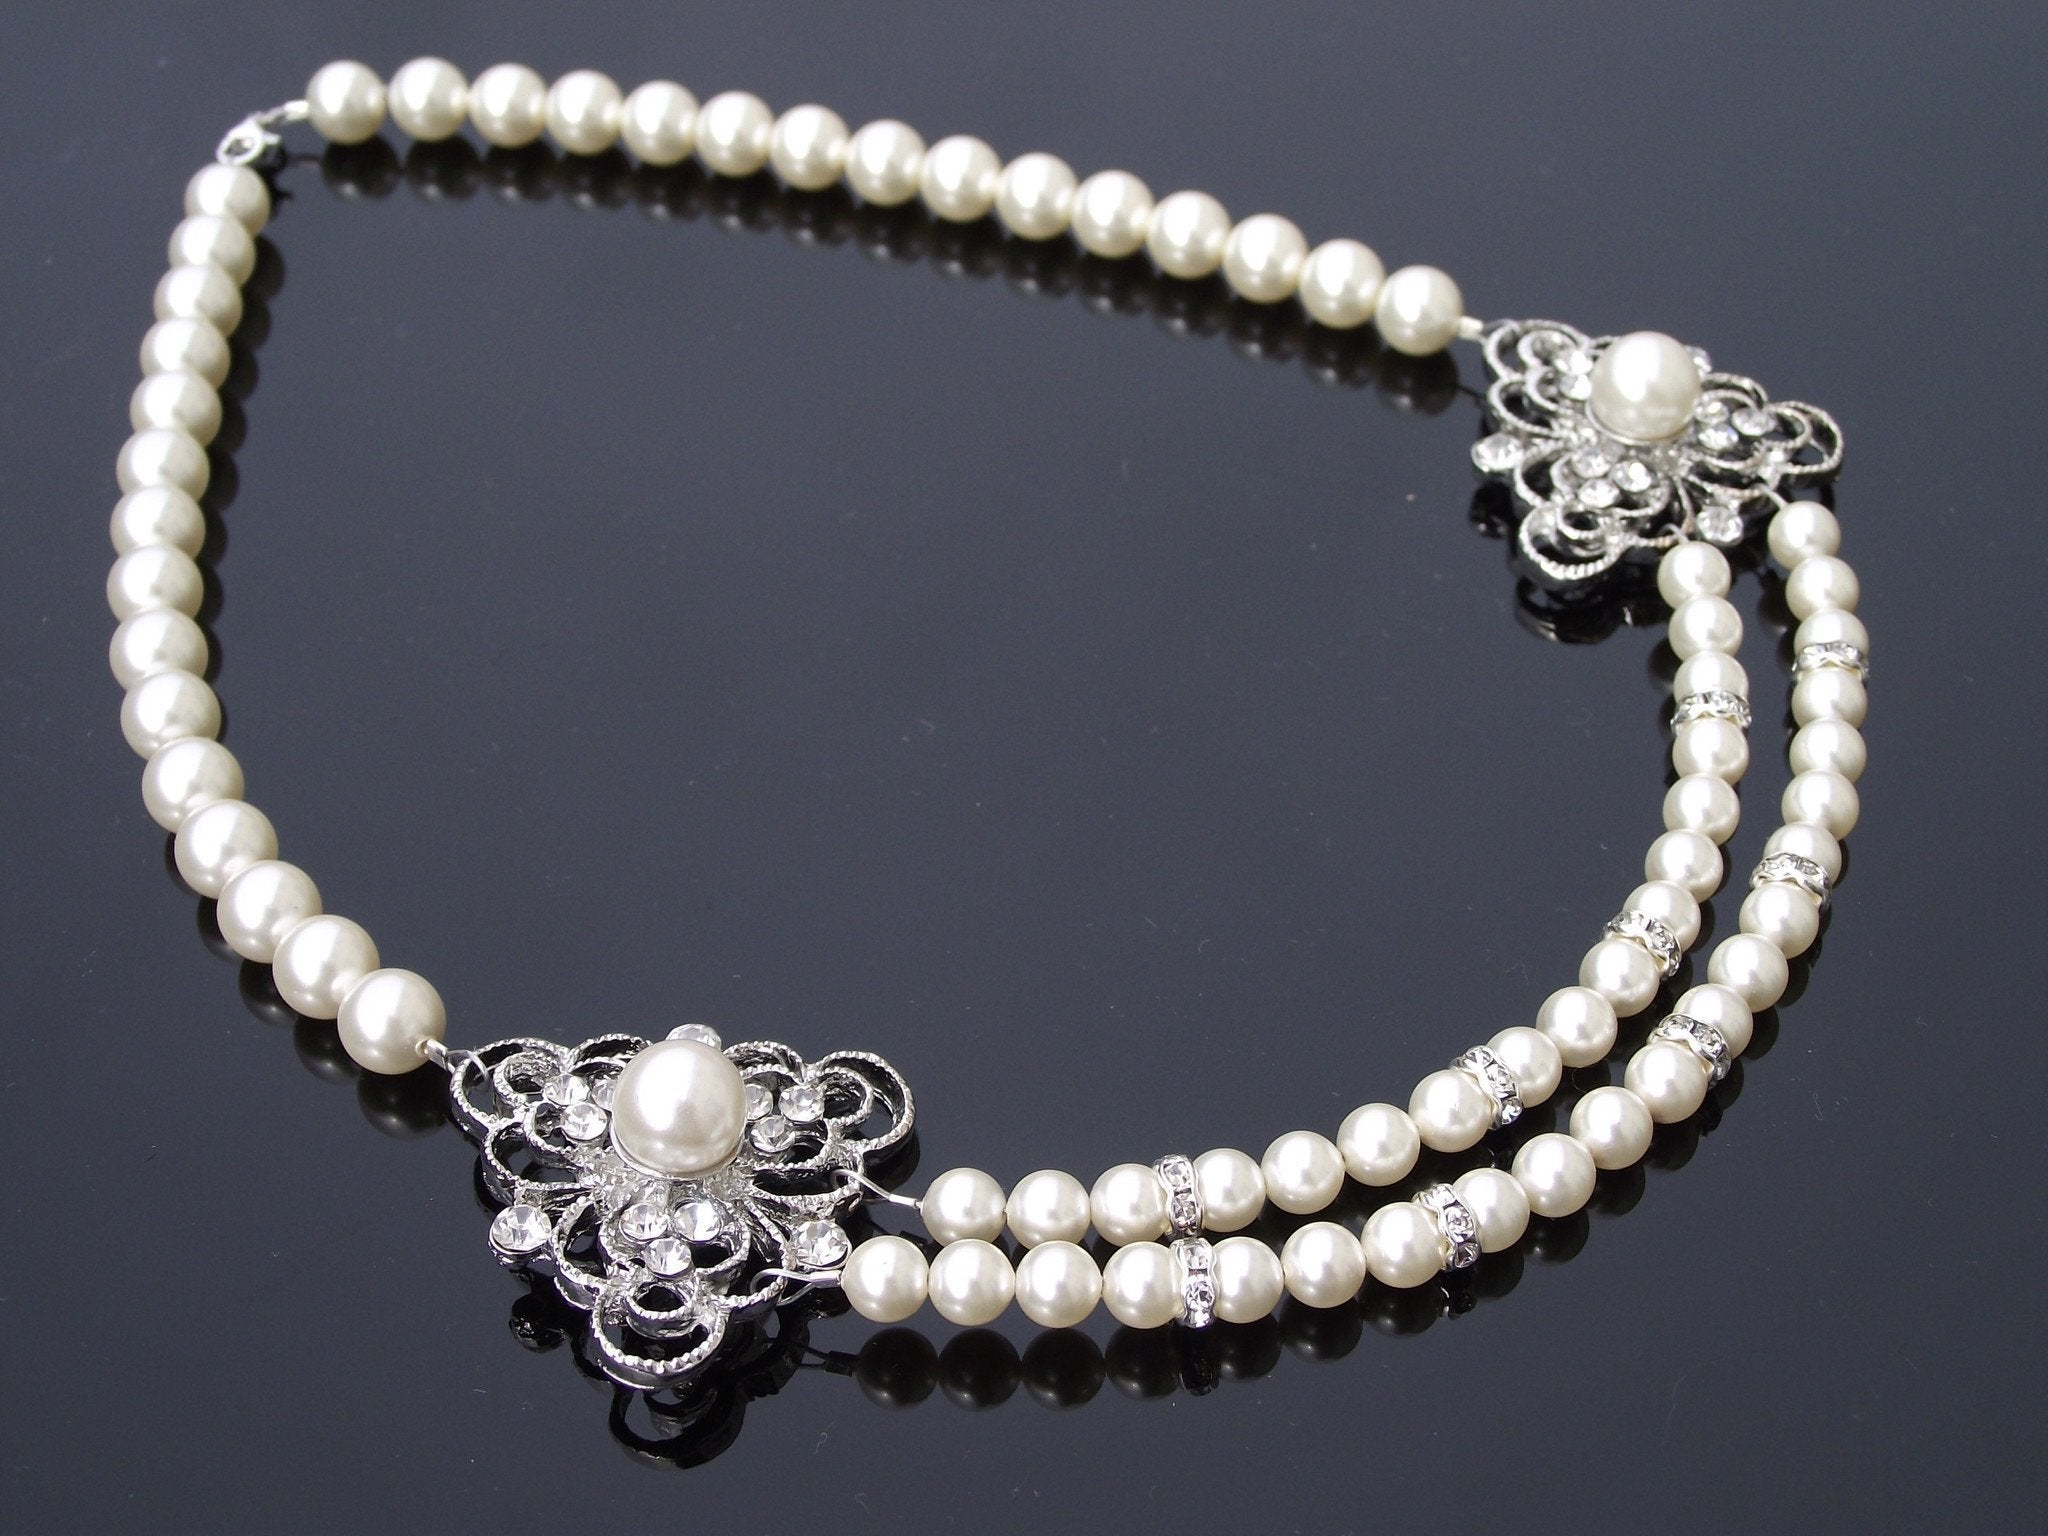 Wedding Necklace - Vintage Style Pearl Necklace, Swarovski Pearls & Rhinestones, Eve